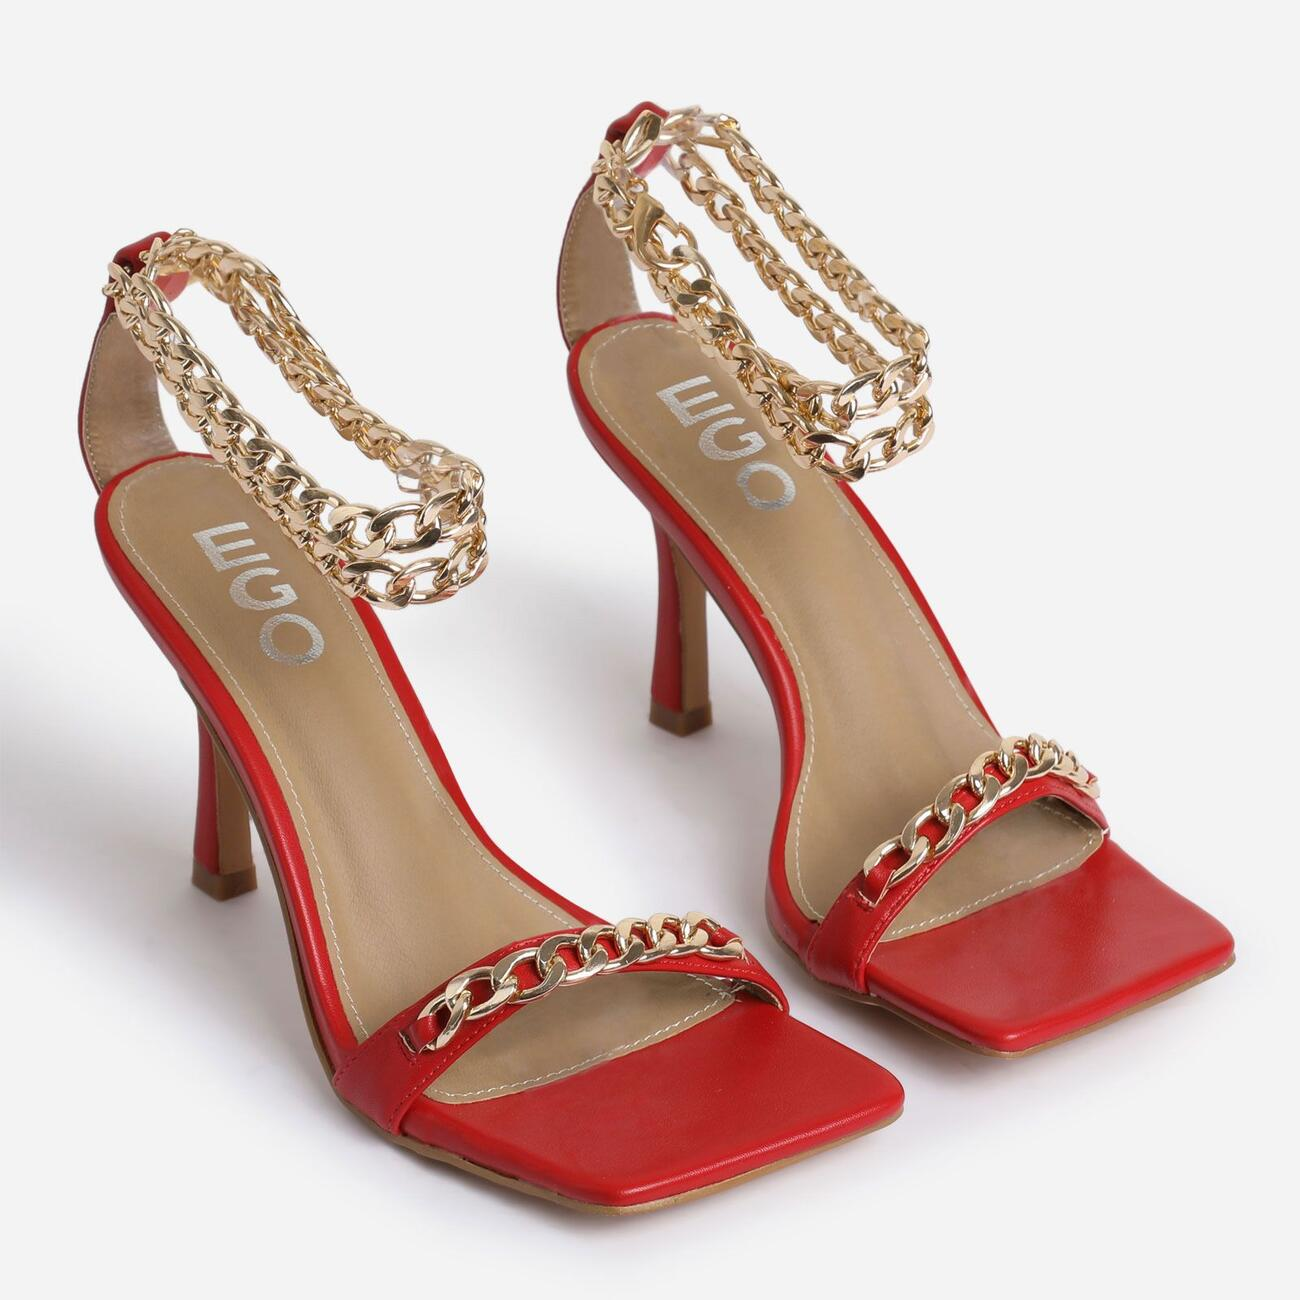 Venice Chain Detail Strap Square Toe Barely There Heel In Red Faux Leather Image 2